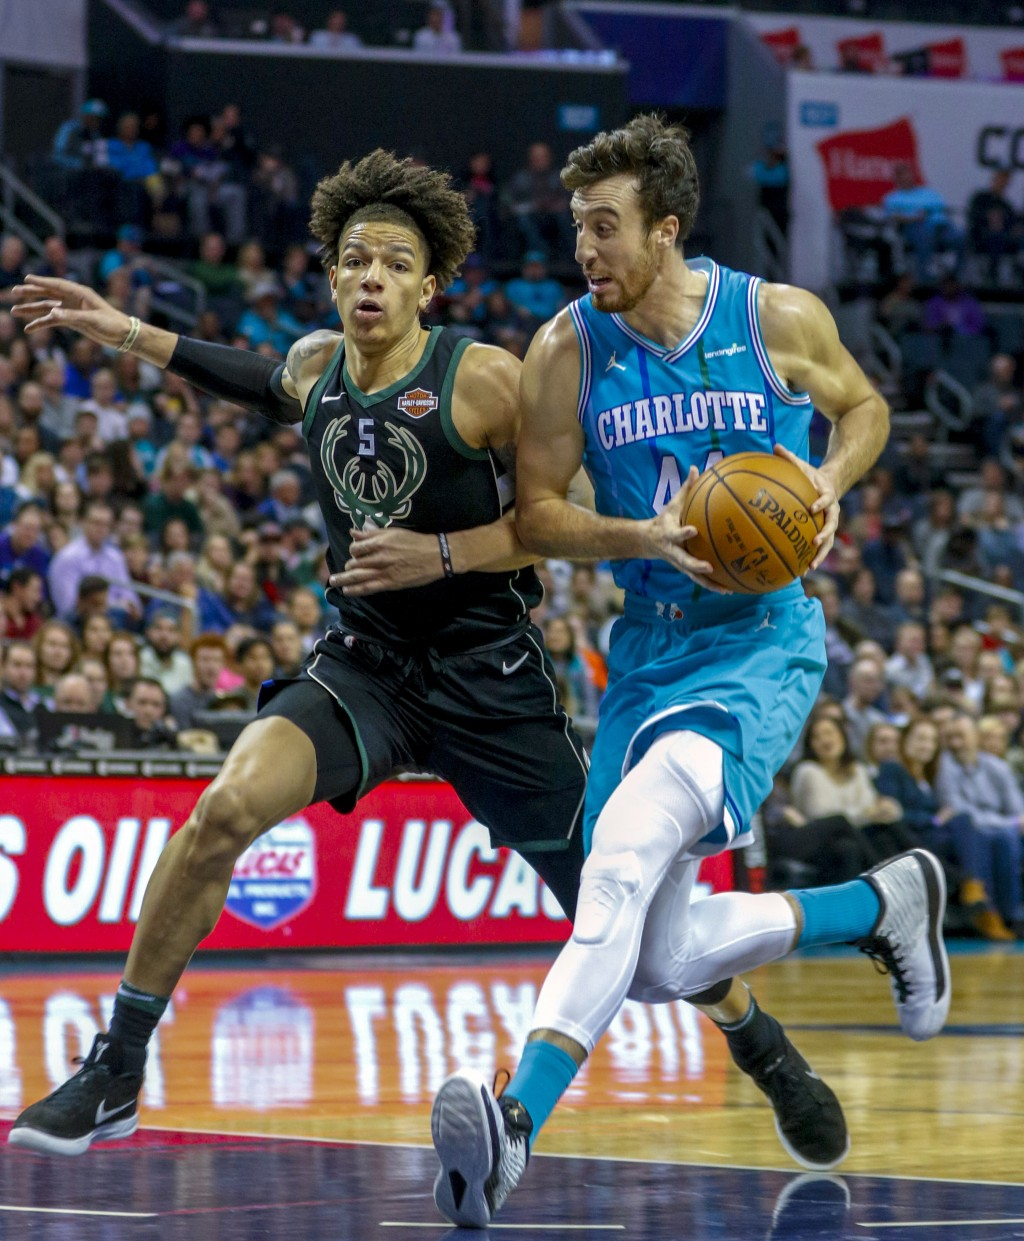 Charlotte Hornets forward Frank Kaminsky, right, drives against Milwaukee Bucks forward D.J. Wilson in the first half of an NBA basketball game in Cha...